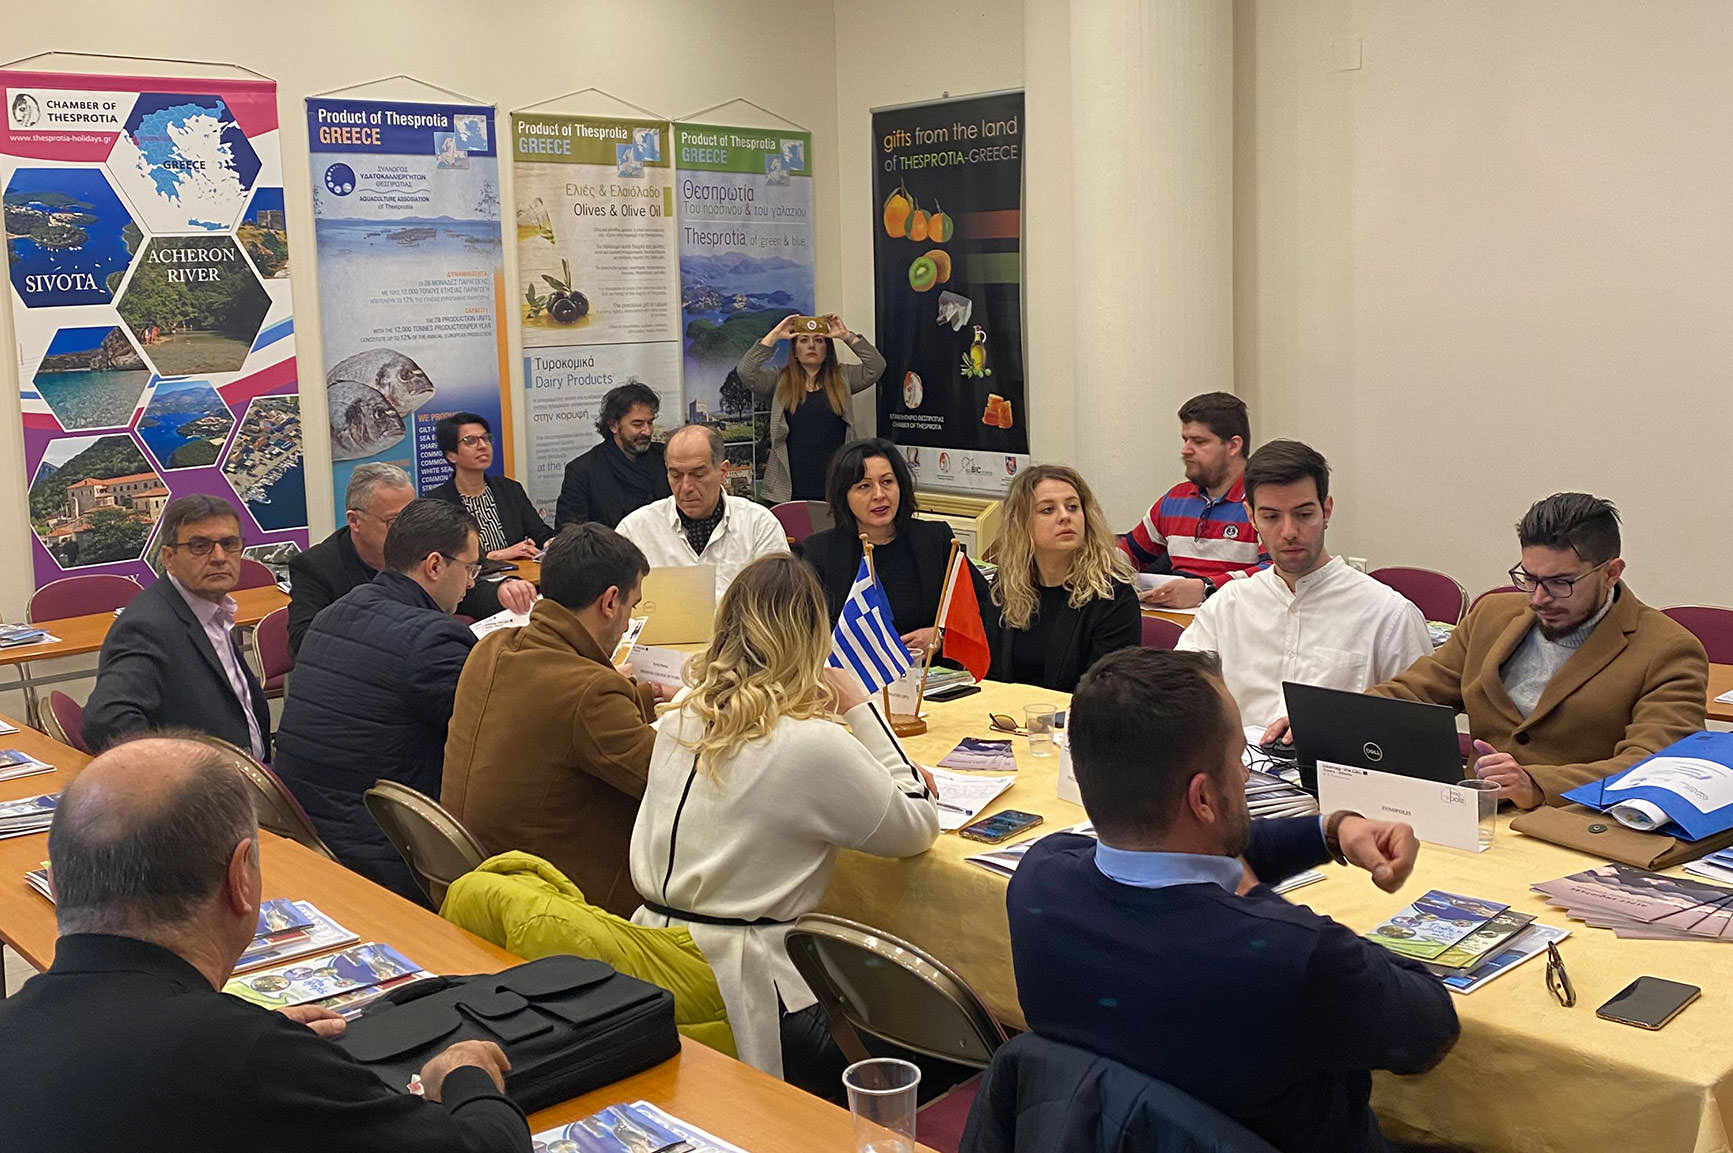 Dissemination event – round table discussions with previous tourism projects in the area